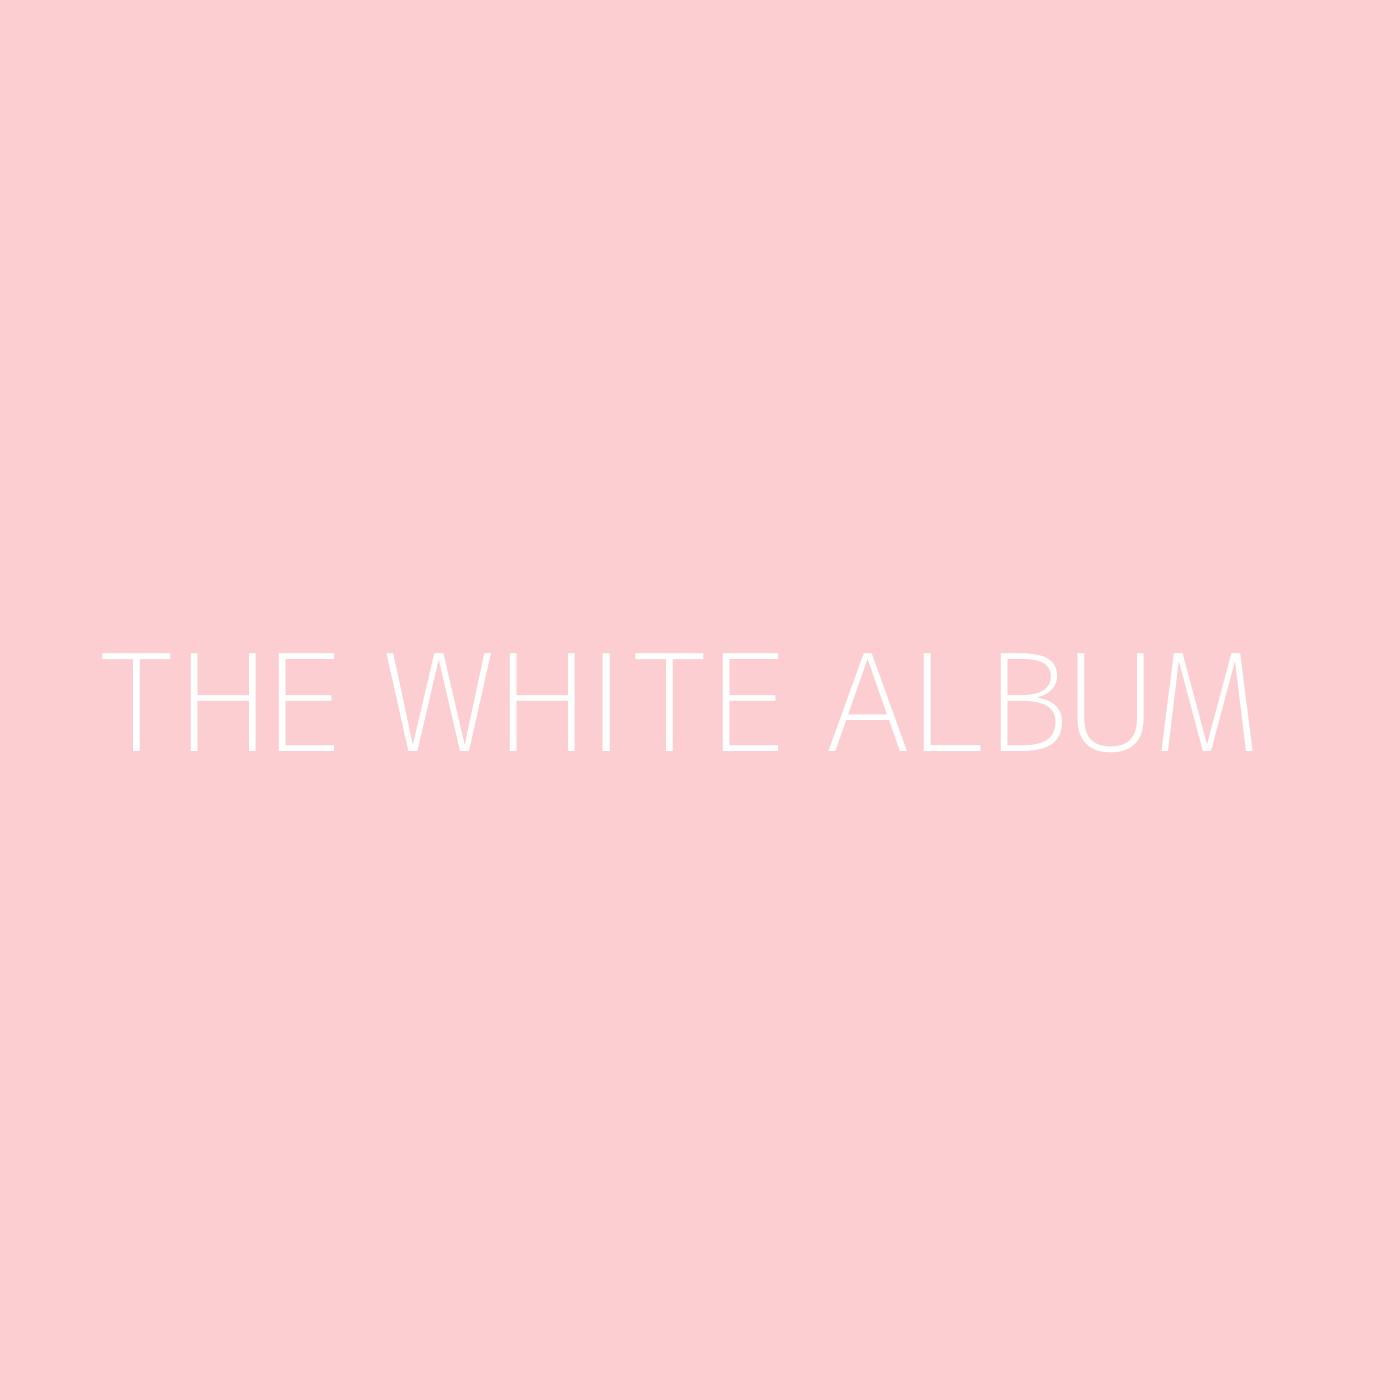 The White Album Playlist Artwork